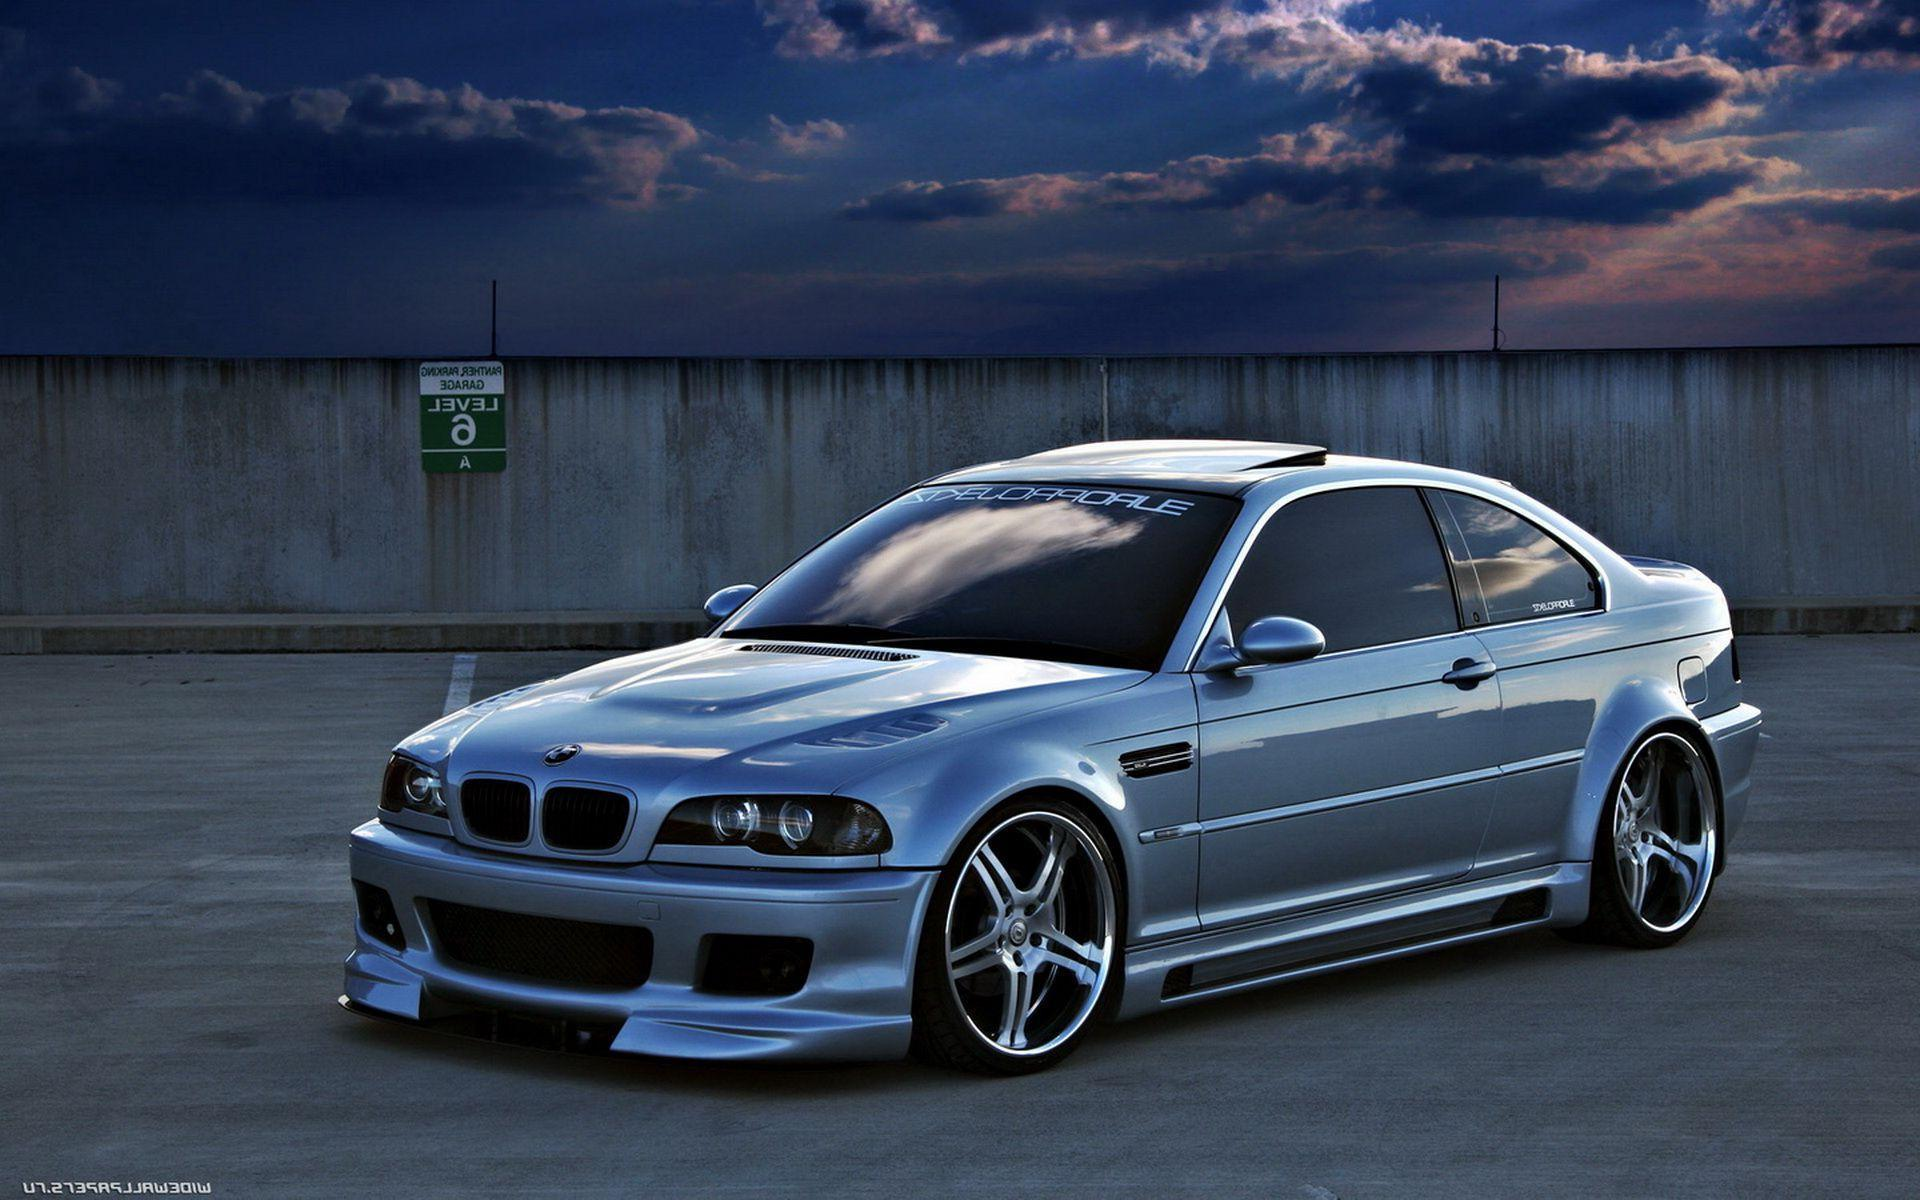 Bmw E46 M3 Gtr Wallpapers Wallpaper Cave